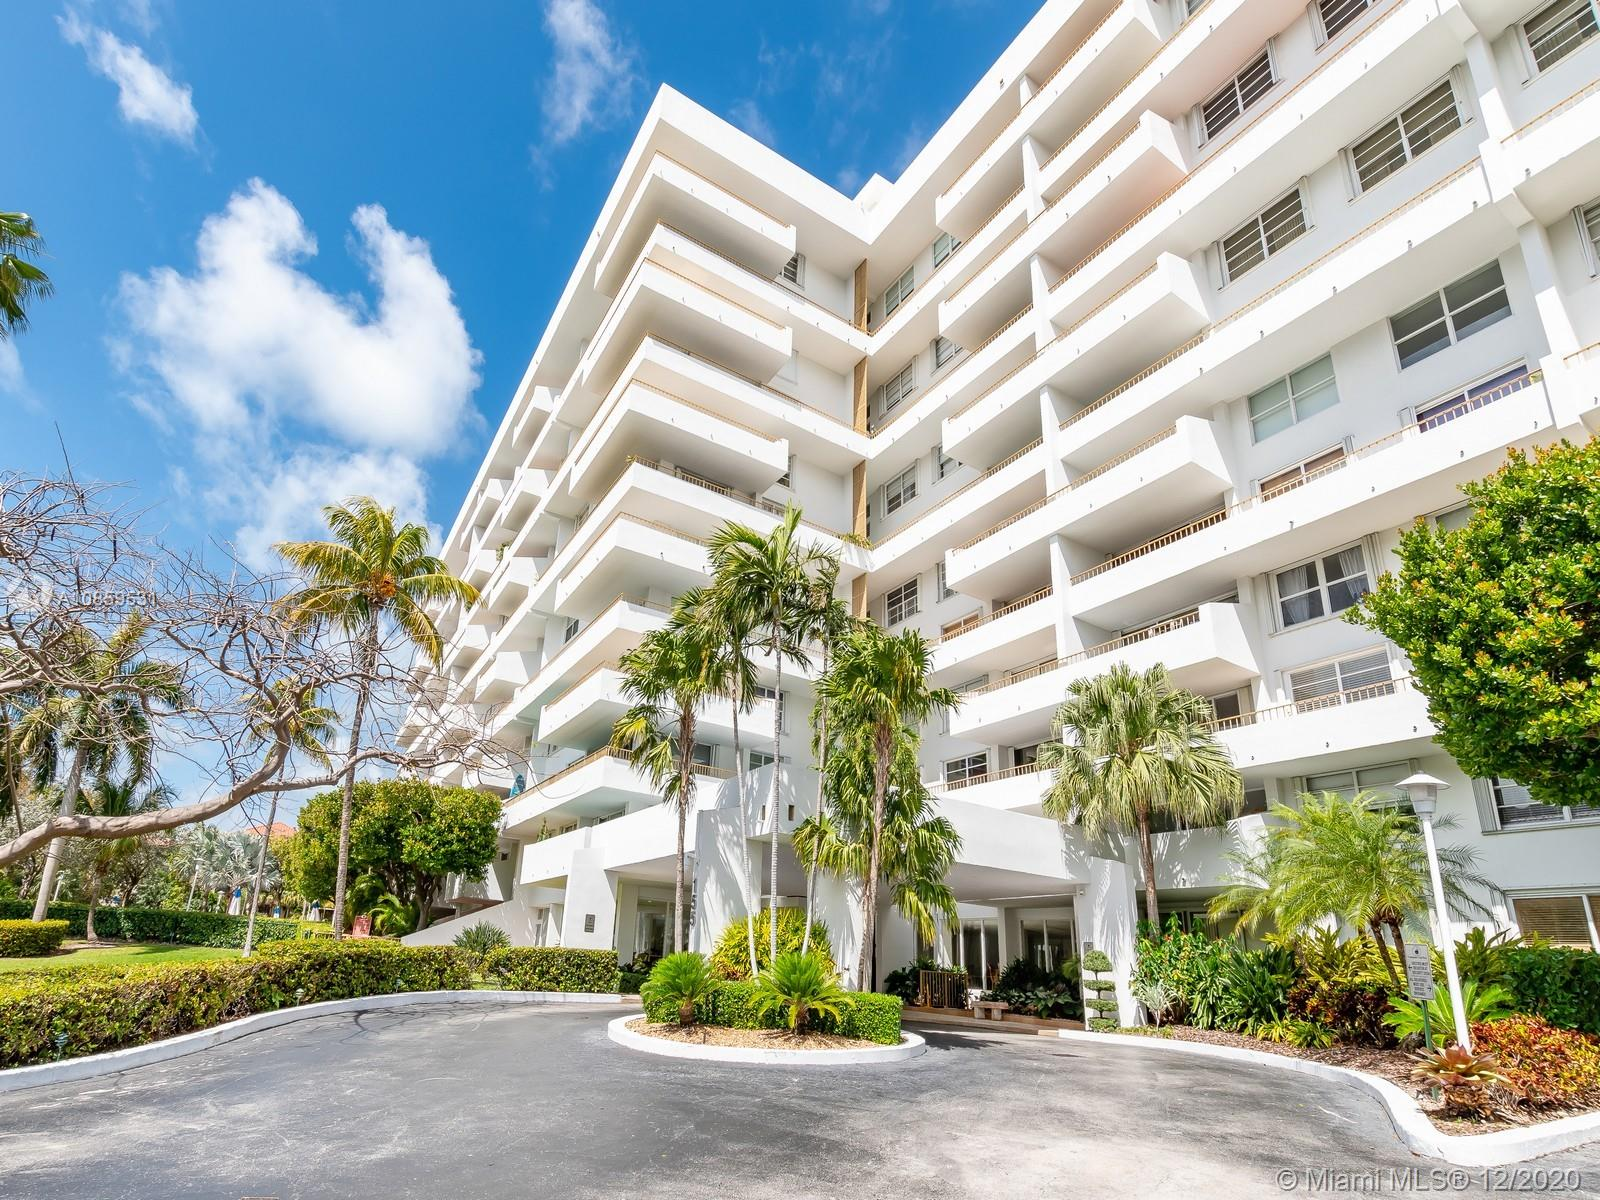 Commodore Club West #506 - 155 Ocean Lane Dr #506, Key Biscayne, FL 33149